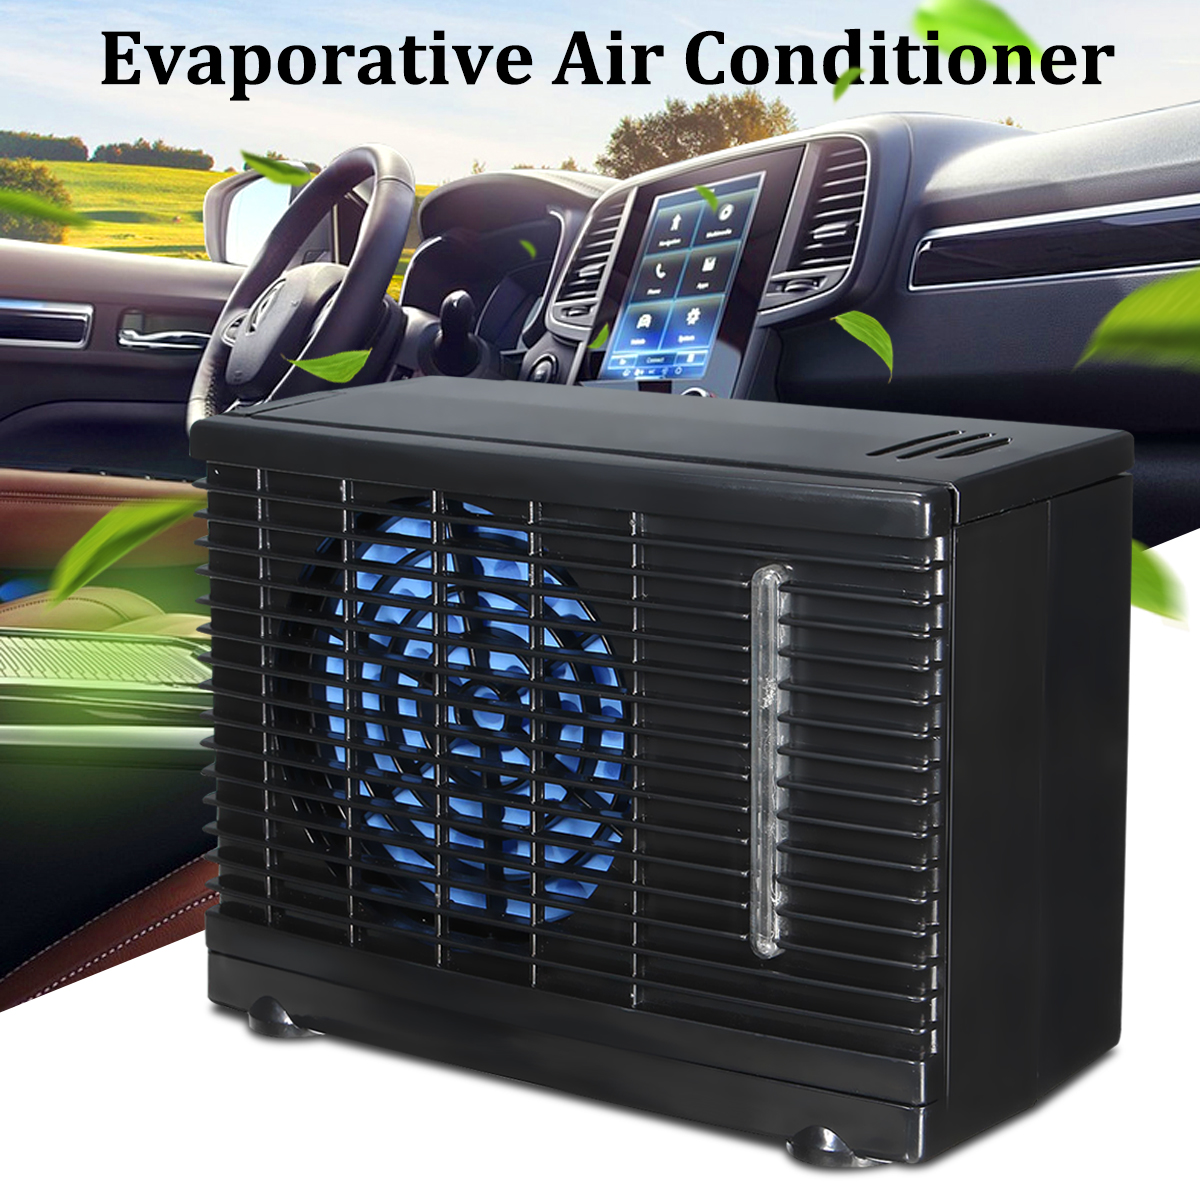 Portable Mini Car Air Conditioner Home Car Cooler Cooling Fan Water Ice Evaporative Car Air Conditioner 12/24V ozuko 14 inch laptop backpack large capacity waterproof men business computer bag oxford travel mochila school bag for teenagers